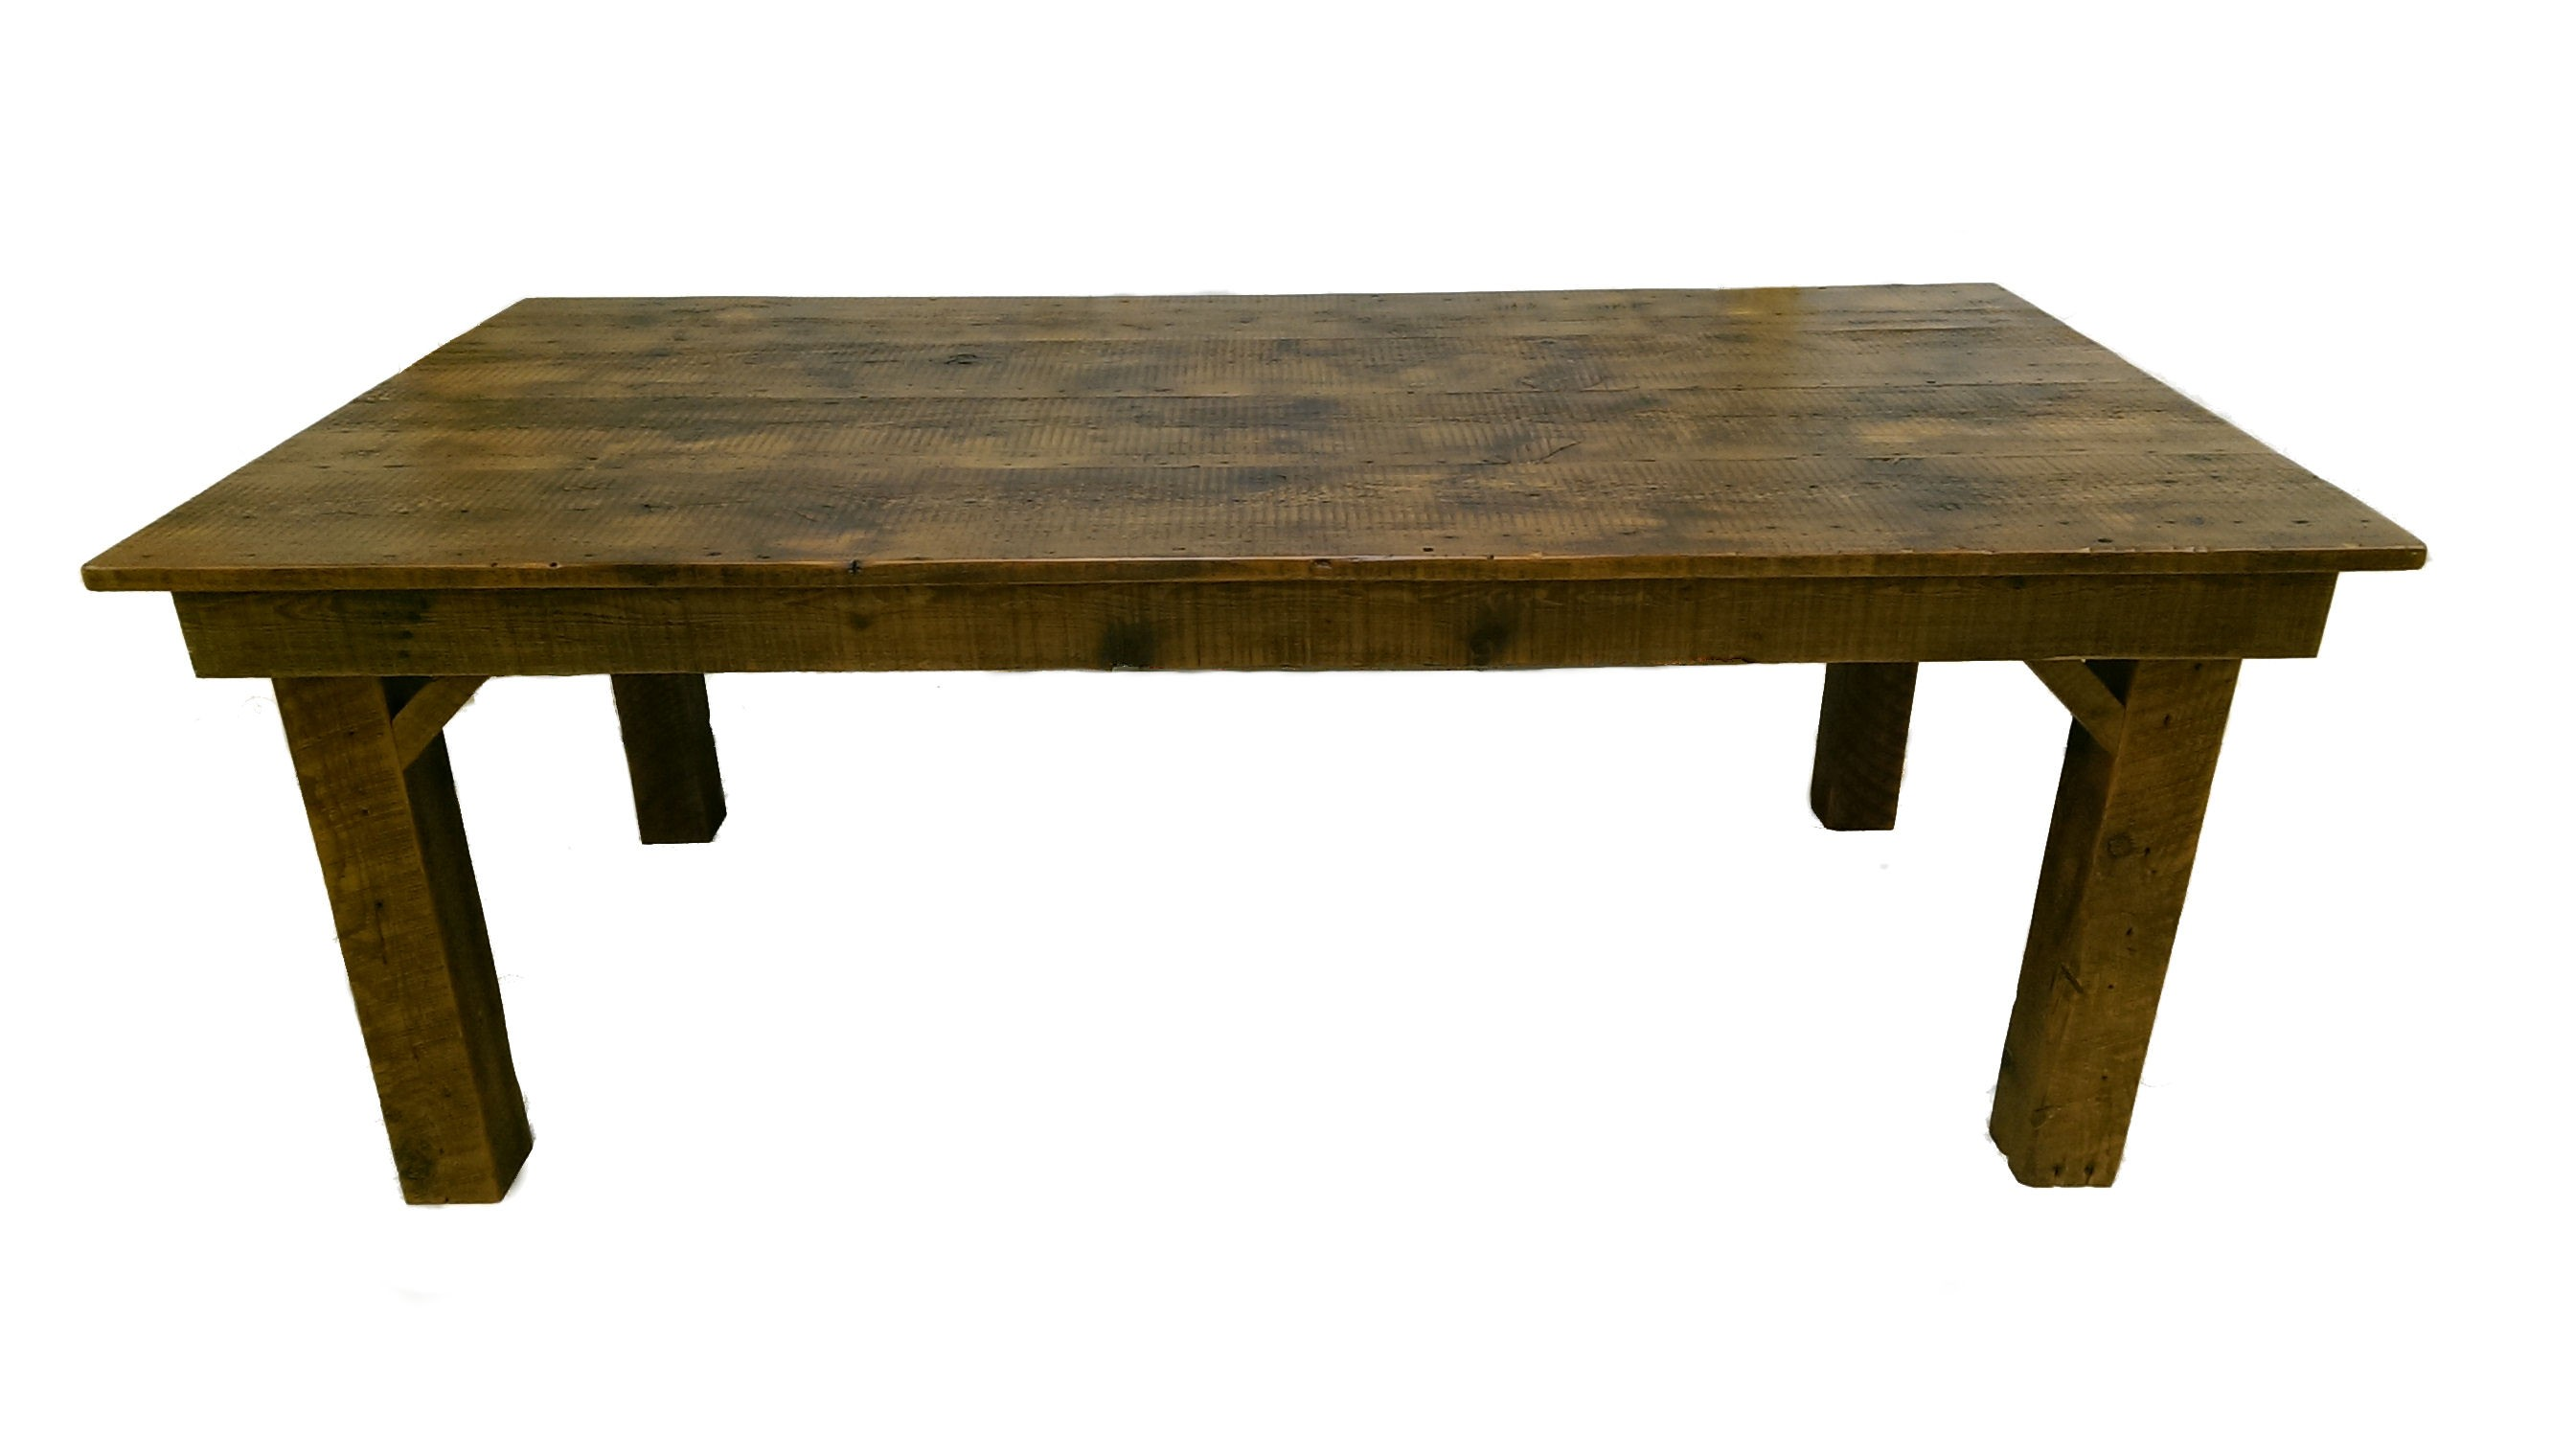 Reclaimed barn wood farmhouse dining table white cedar for Reclaimed dining room table